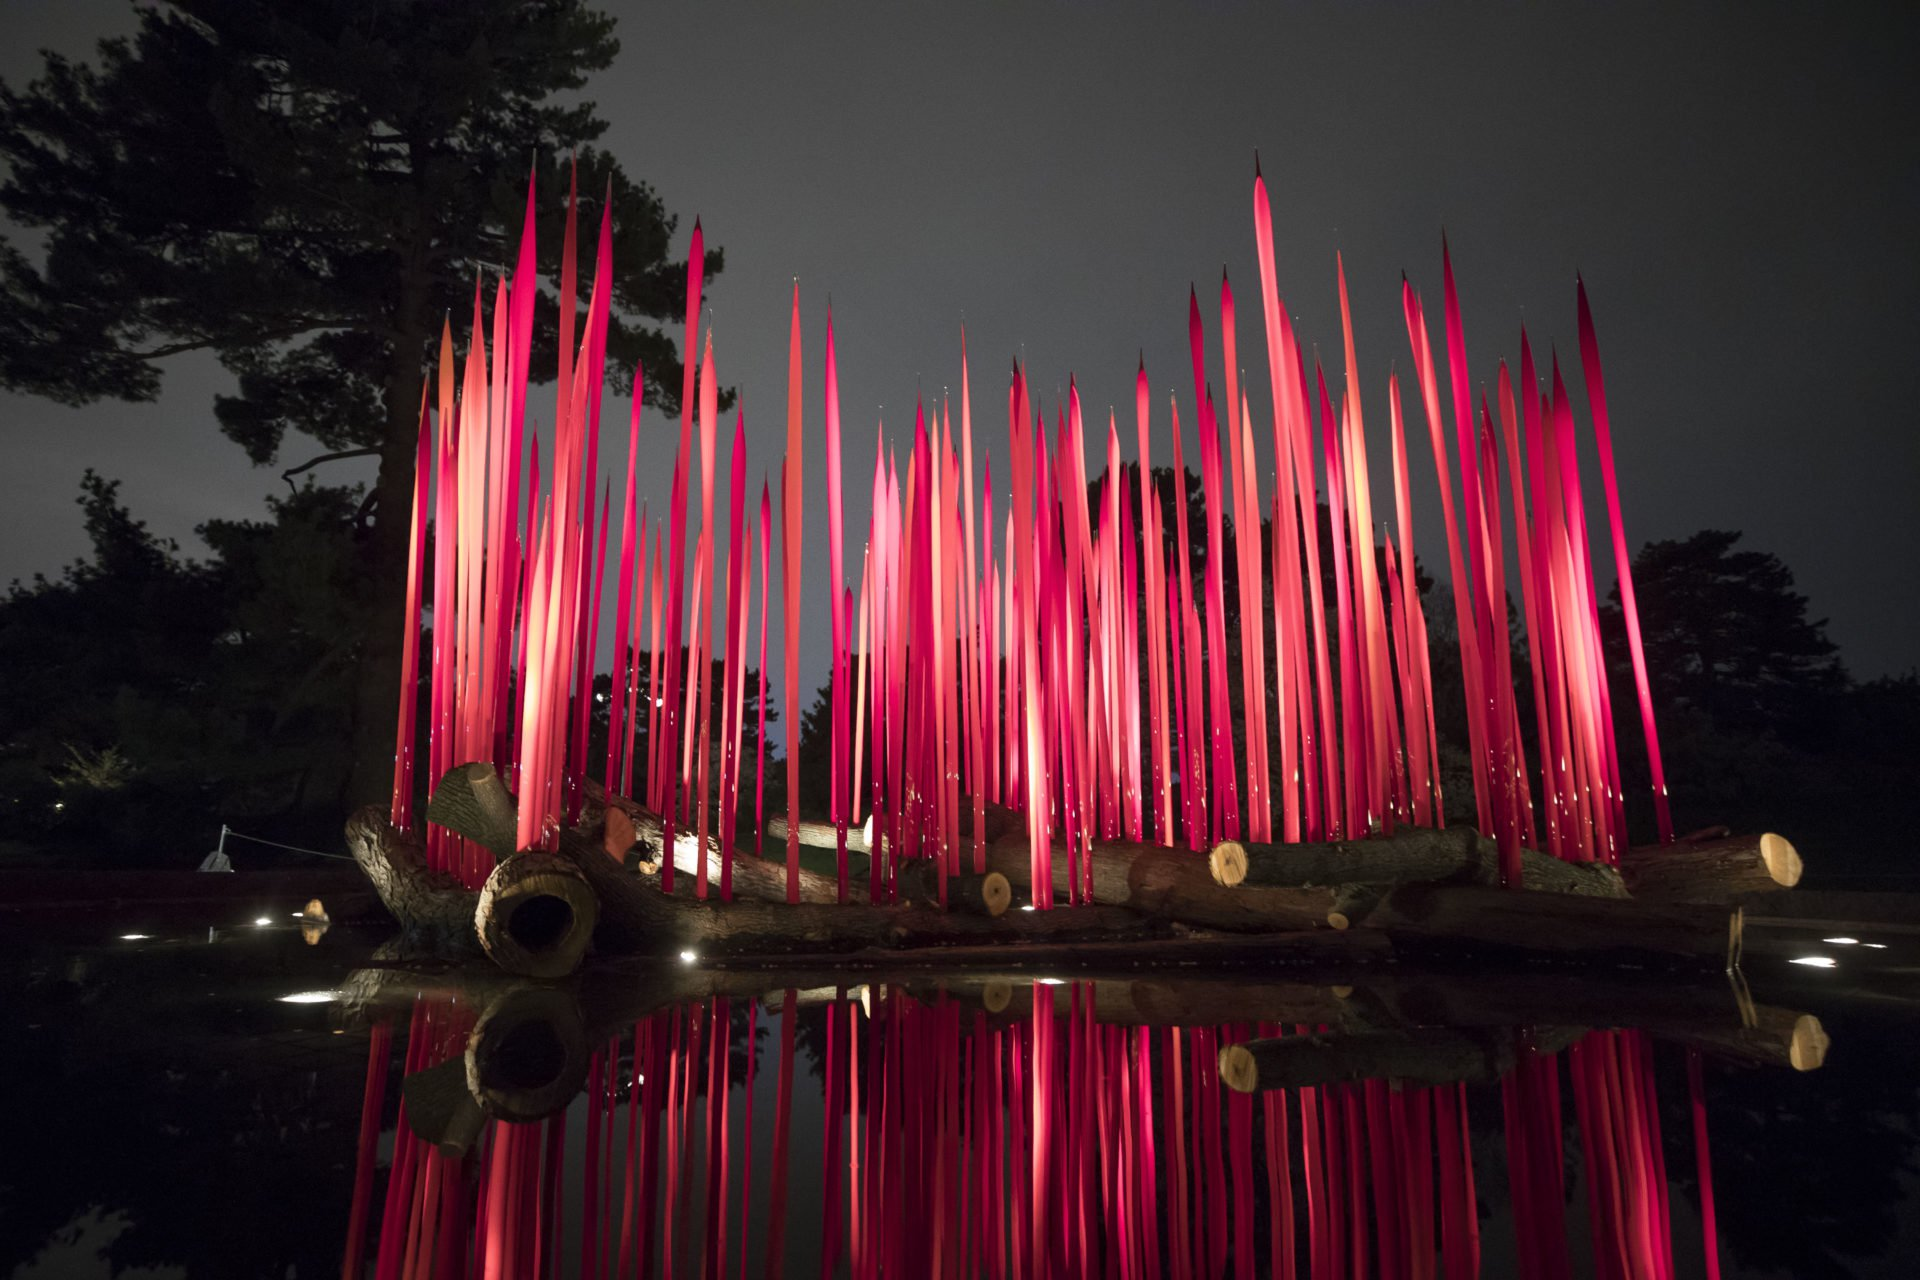 NYBG_CHIHULY_02-Red_Reeds_on_Logs_2017-1920x1280.jpg